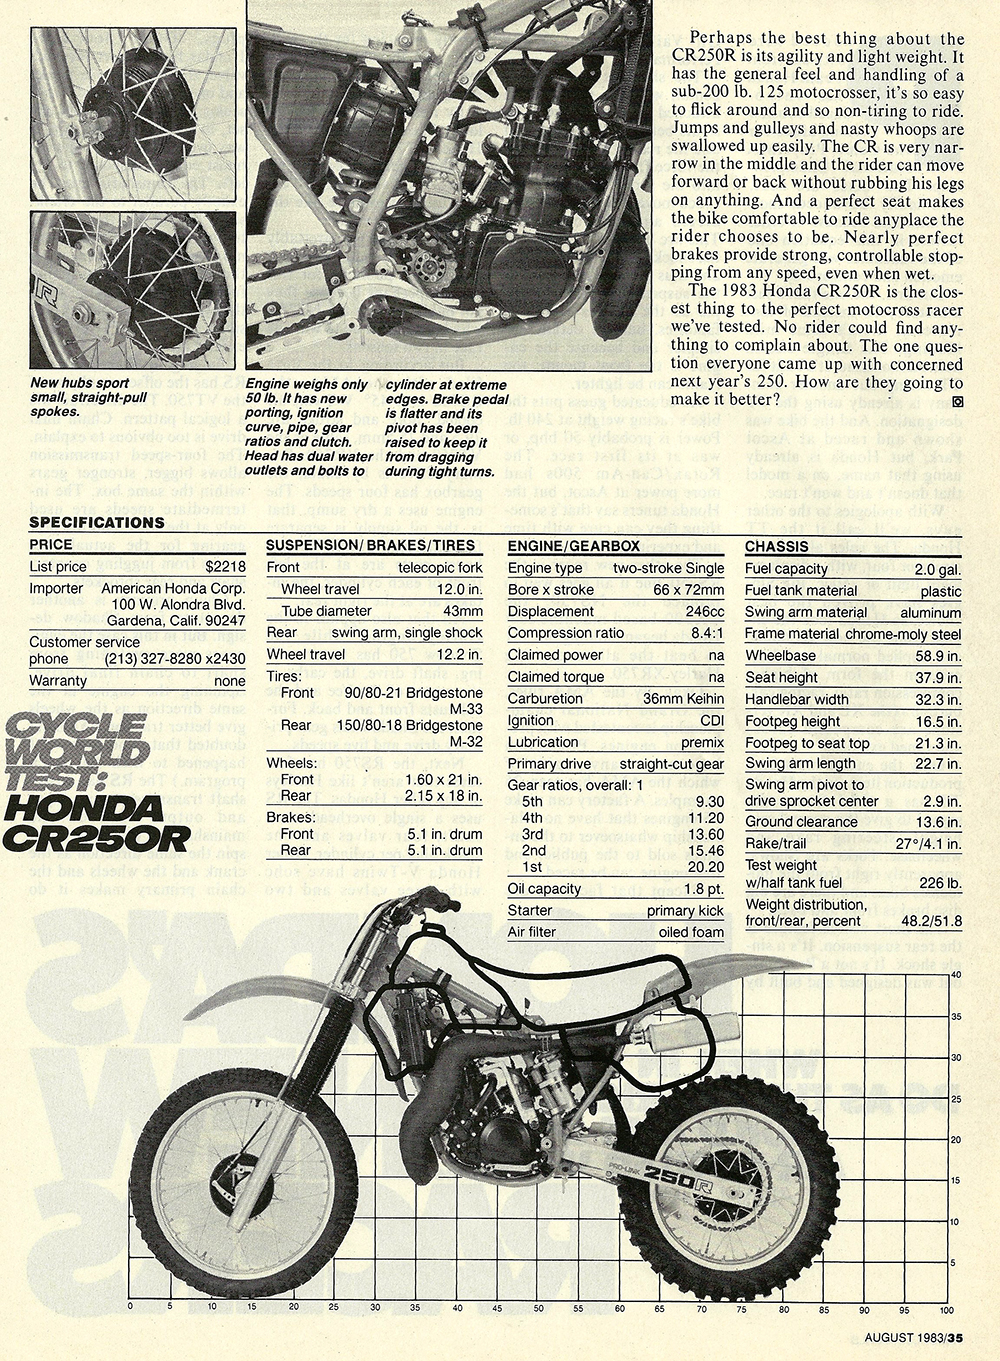 1983 Honda CR250R road test 04.jpg